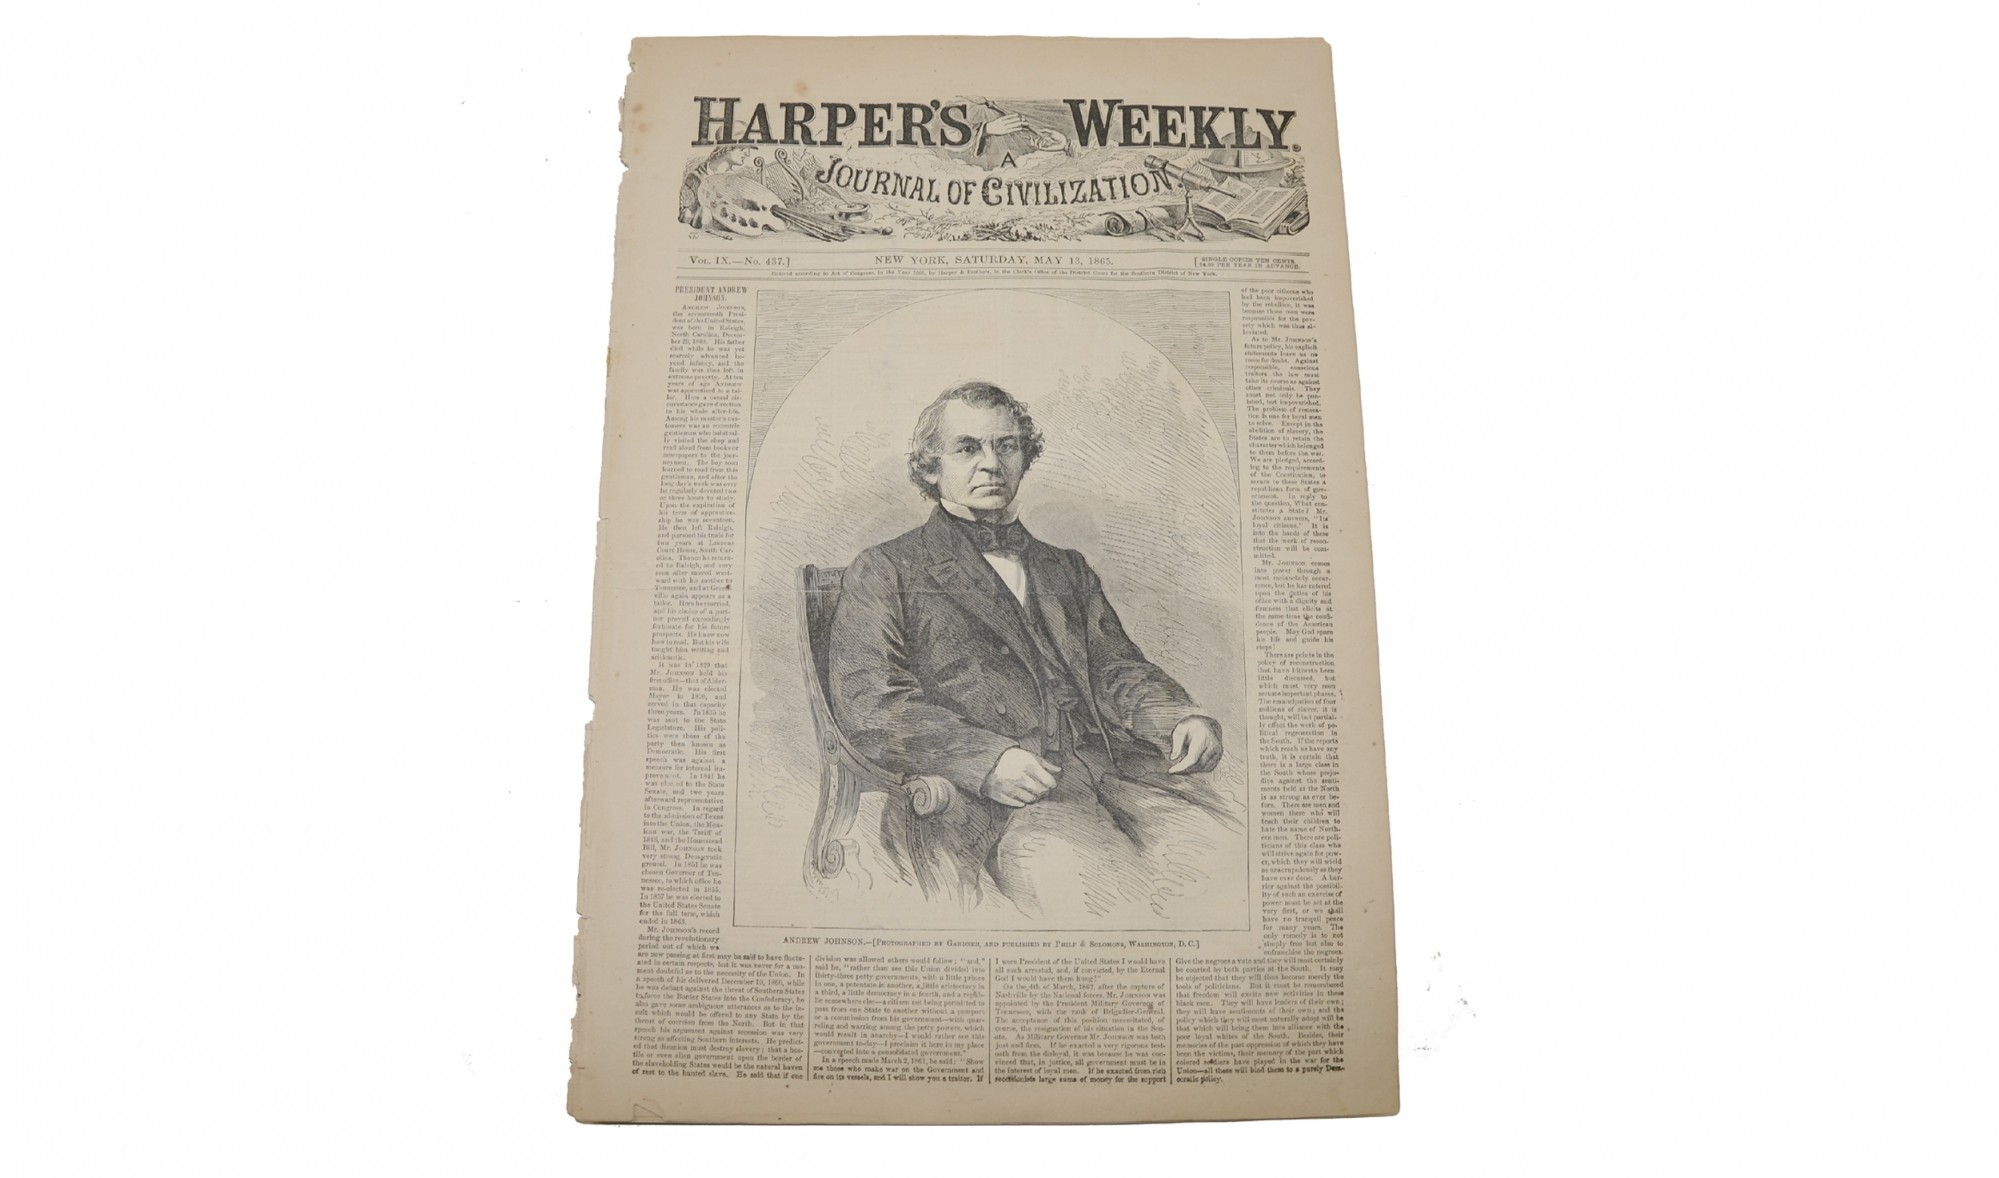 HARPER'S WEEKLY DATED MAY 15, 1865 – JOHN WILKES BOOTH